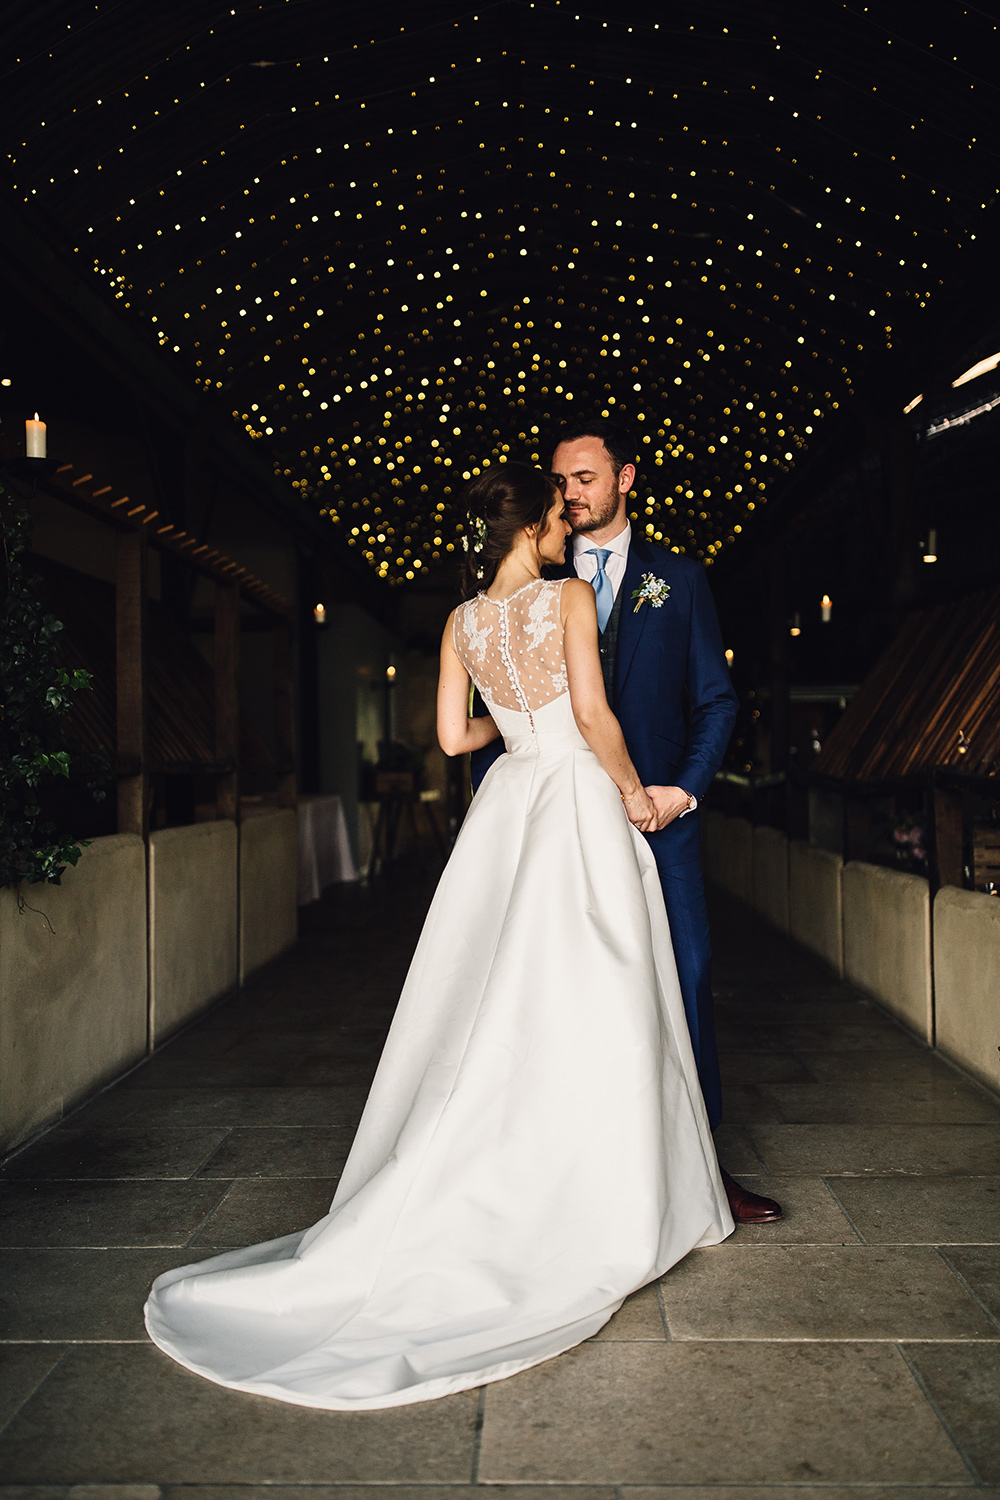 Fun Wedding at Cripps Stone Barn with Hey Style Styling & Props